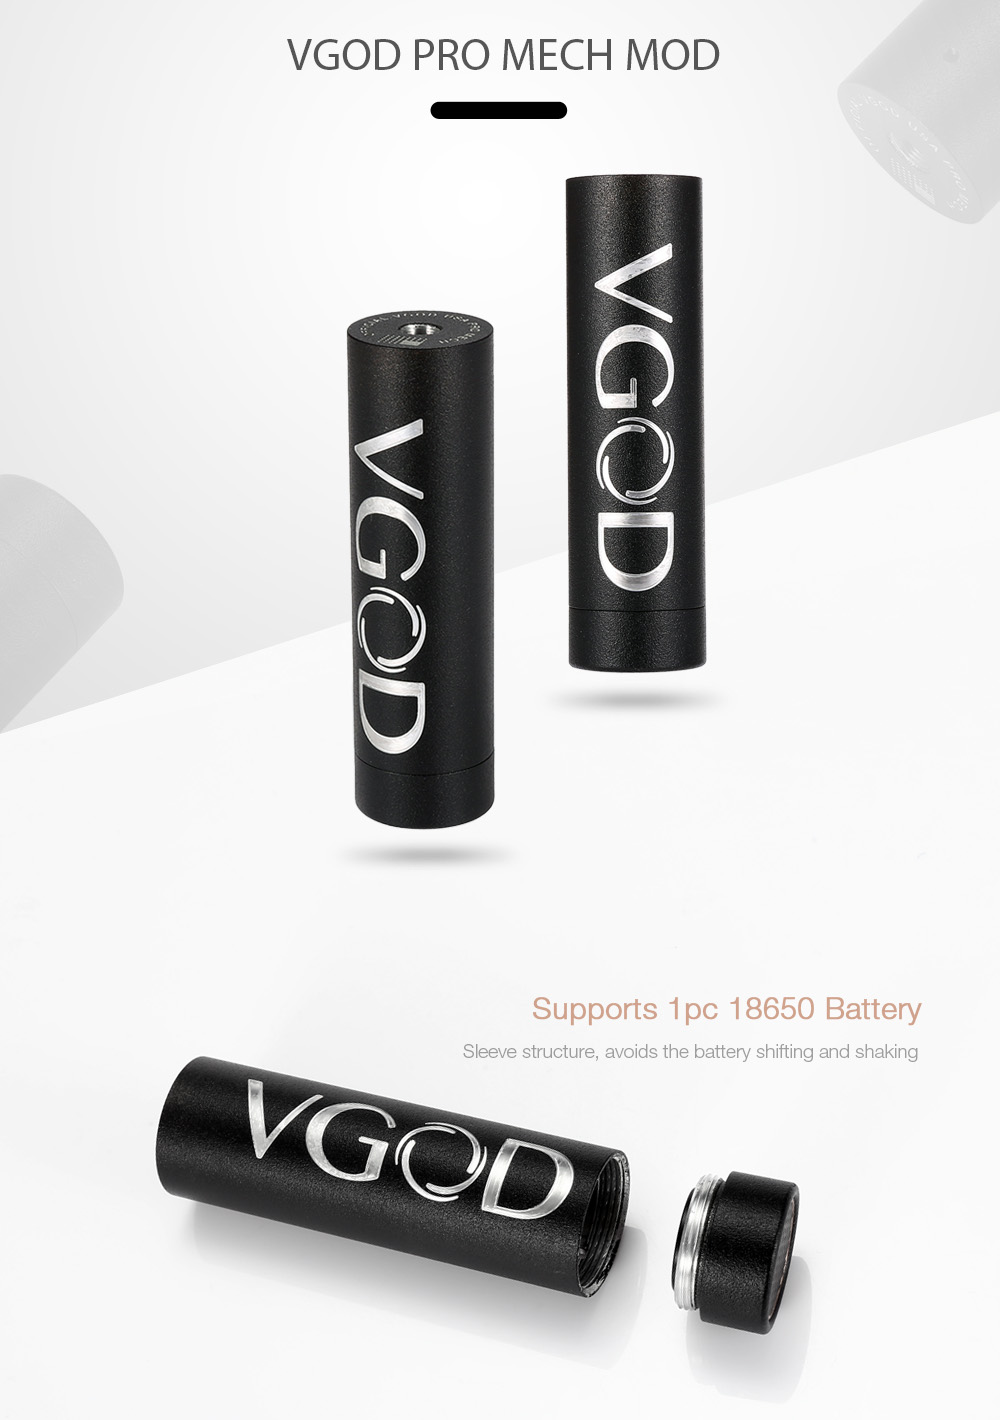 Original VGOD PRO MECH Mod with 24mm / Supporting 1pc 18650 Battery for E Cigarette